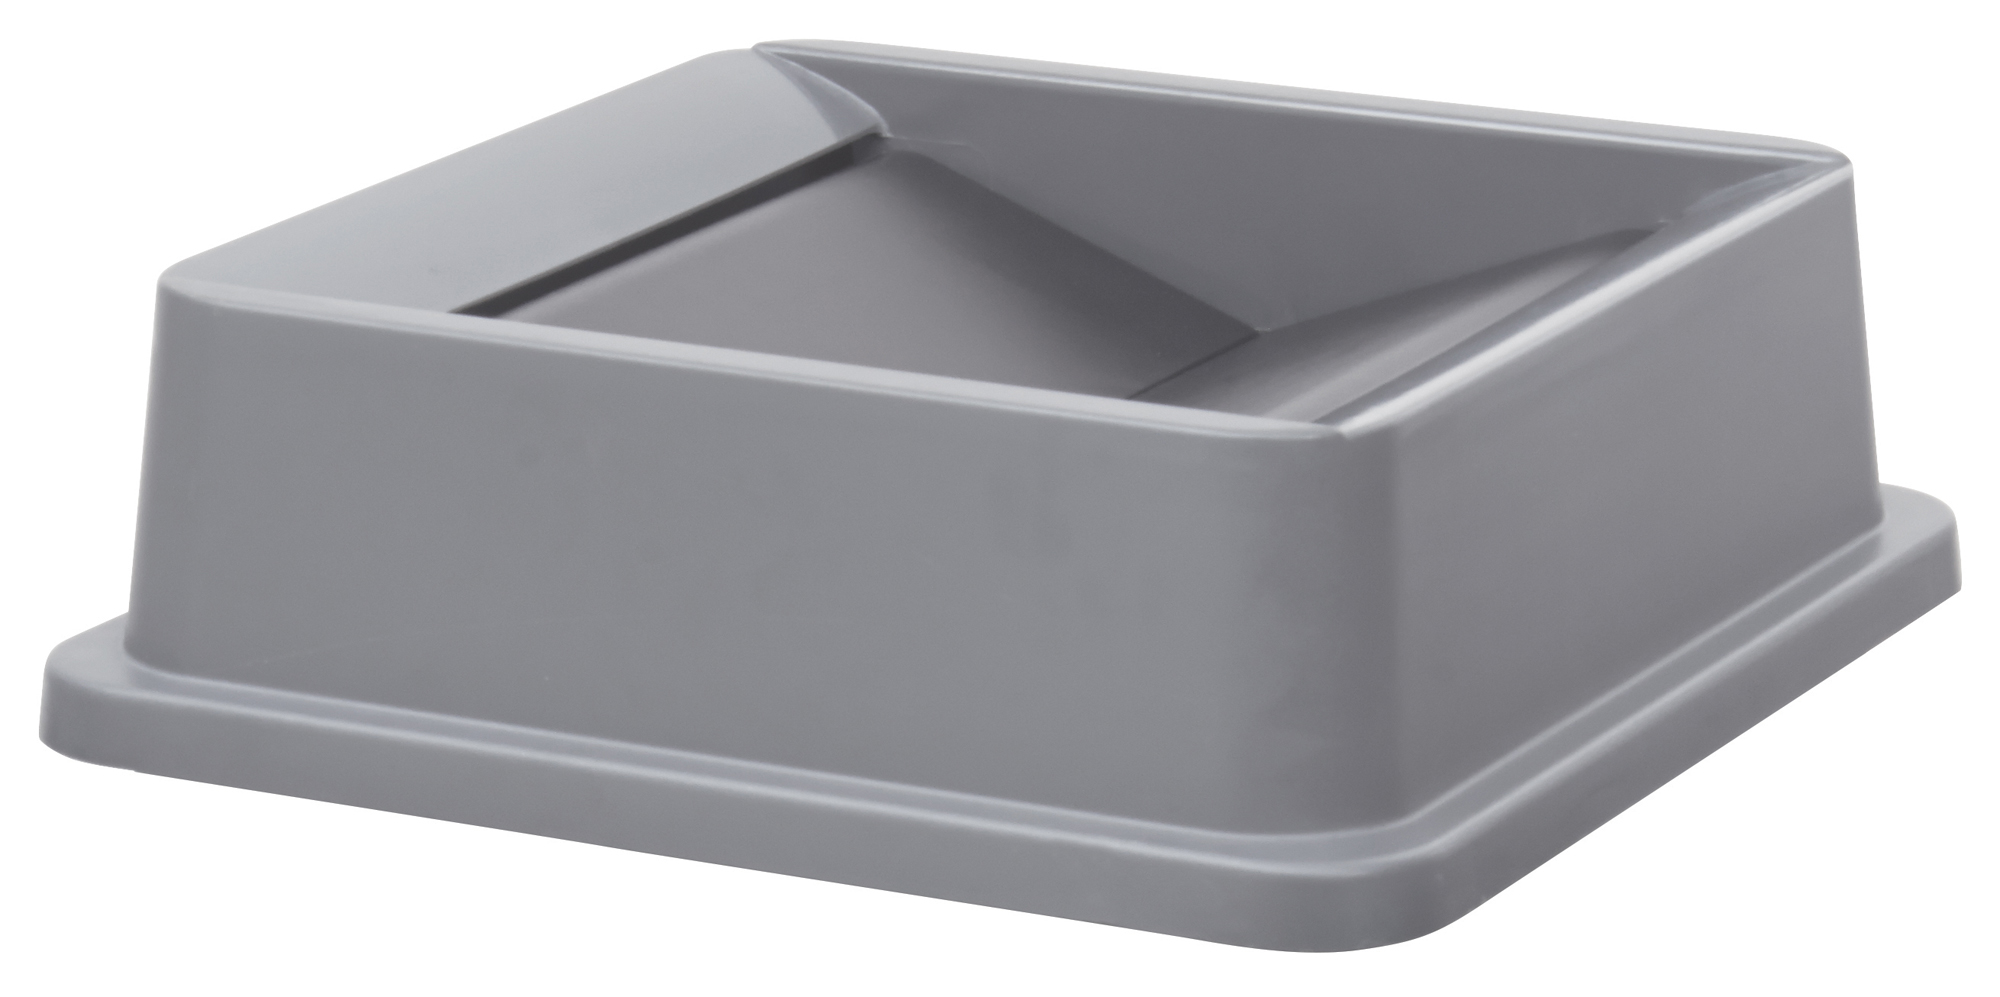 Winco PTCSL-35G trash cans & accessories